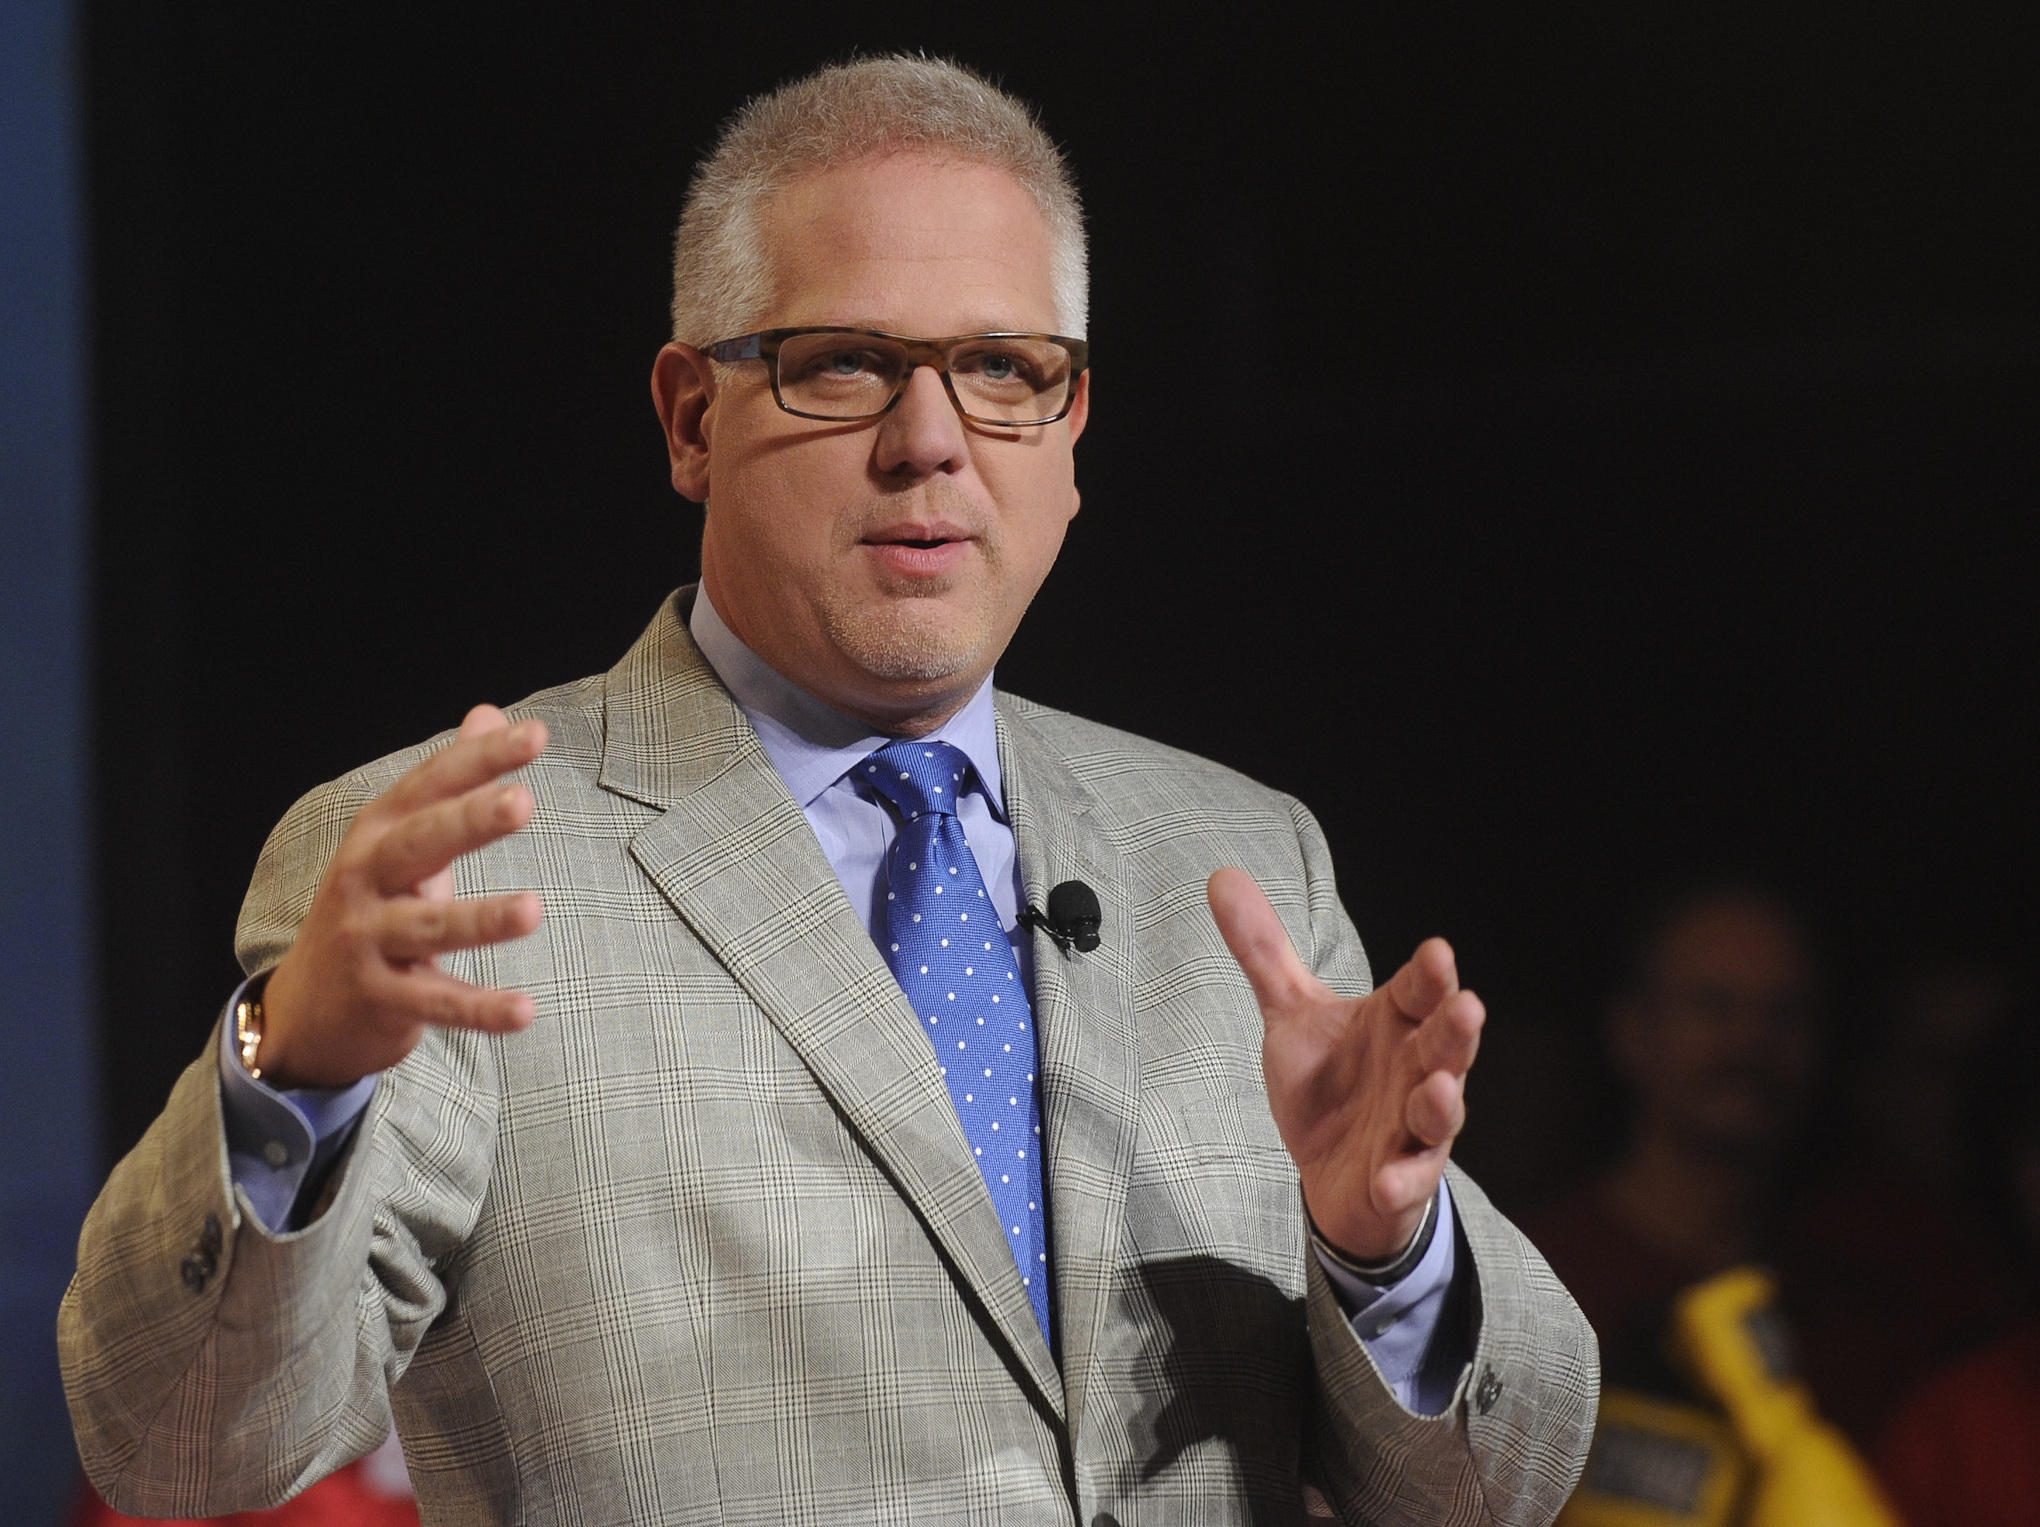 Smaller Audience, Bigger Payoff For Glenn Beck  Vermont. Free Online Debt Consolidation. Ants Extermination Methods Example Of Hybrid. Sports Car Rentals Las Vegas. High Barrier Packaging Accounting For Options. Online Schools With Financial Aid. Online Advertisement Maker Sell Junk Car Utah. Pest Control Hollywood Auto Repair San Marcos. Florida Traffic Ticket School